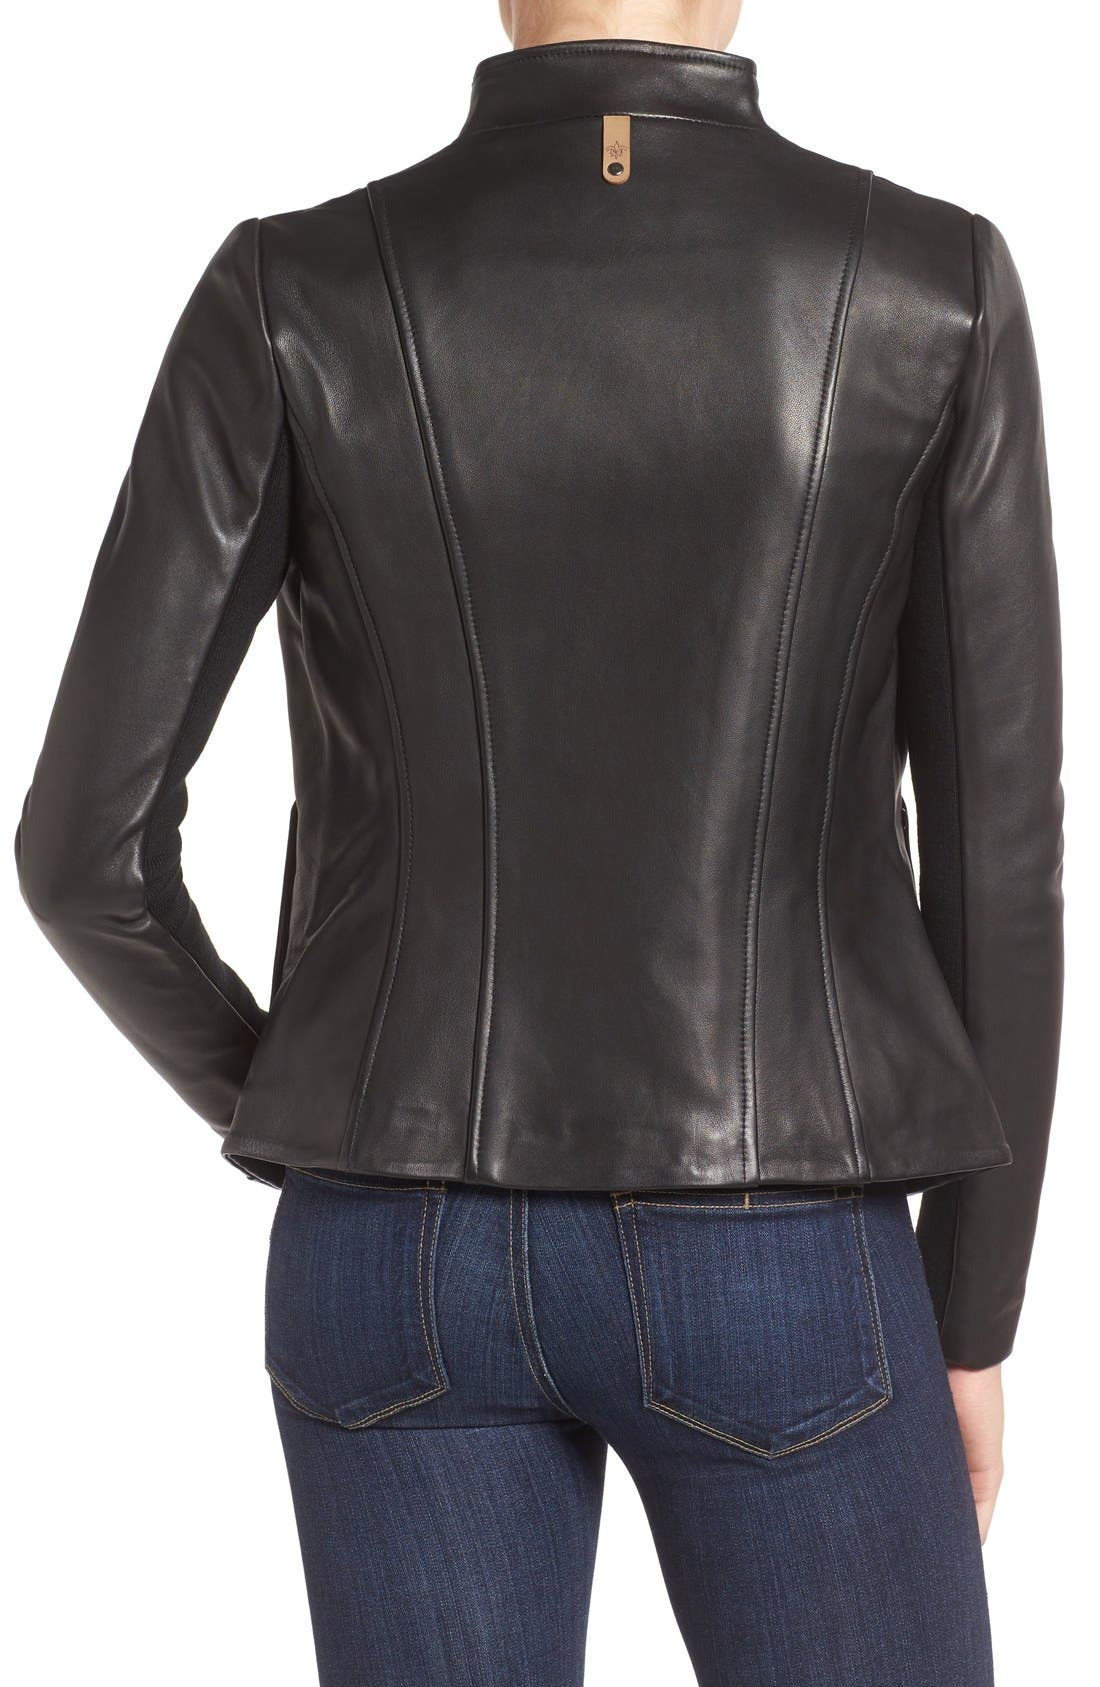 MACKAGE,                             Leather Jacket,                             Alternate thumbnail 2, color,                             001